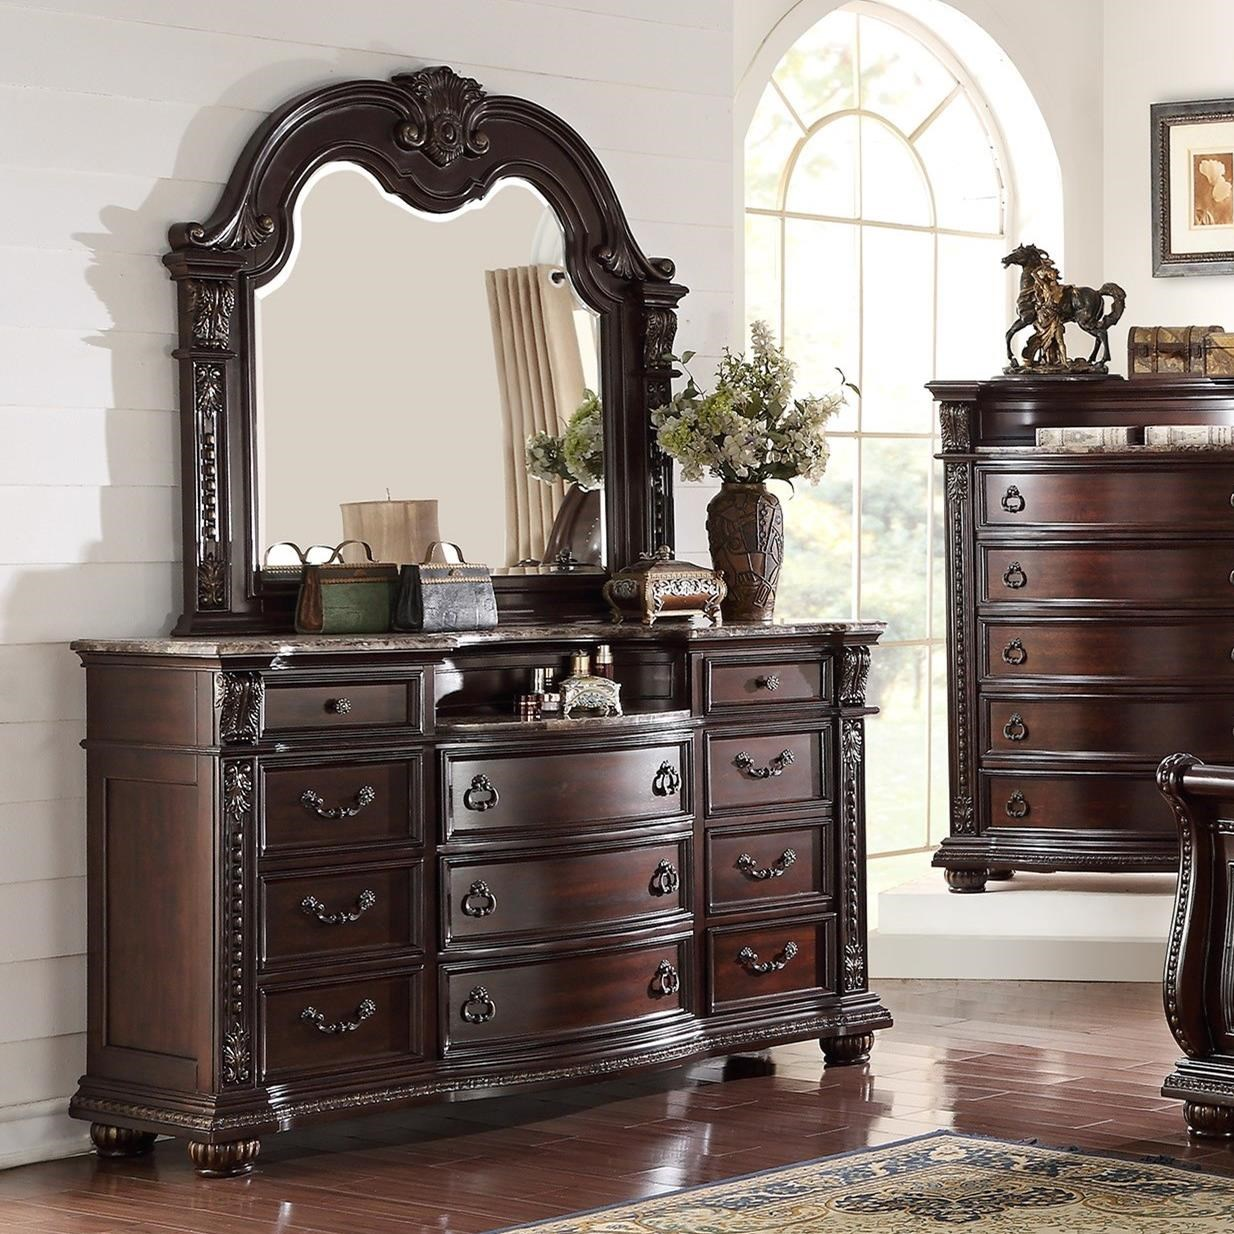 Bedroom Dressers With Mirrors: Crown Mark Stanley Bedroom Traditional Dresser And Mirror